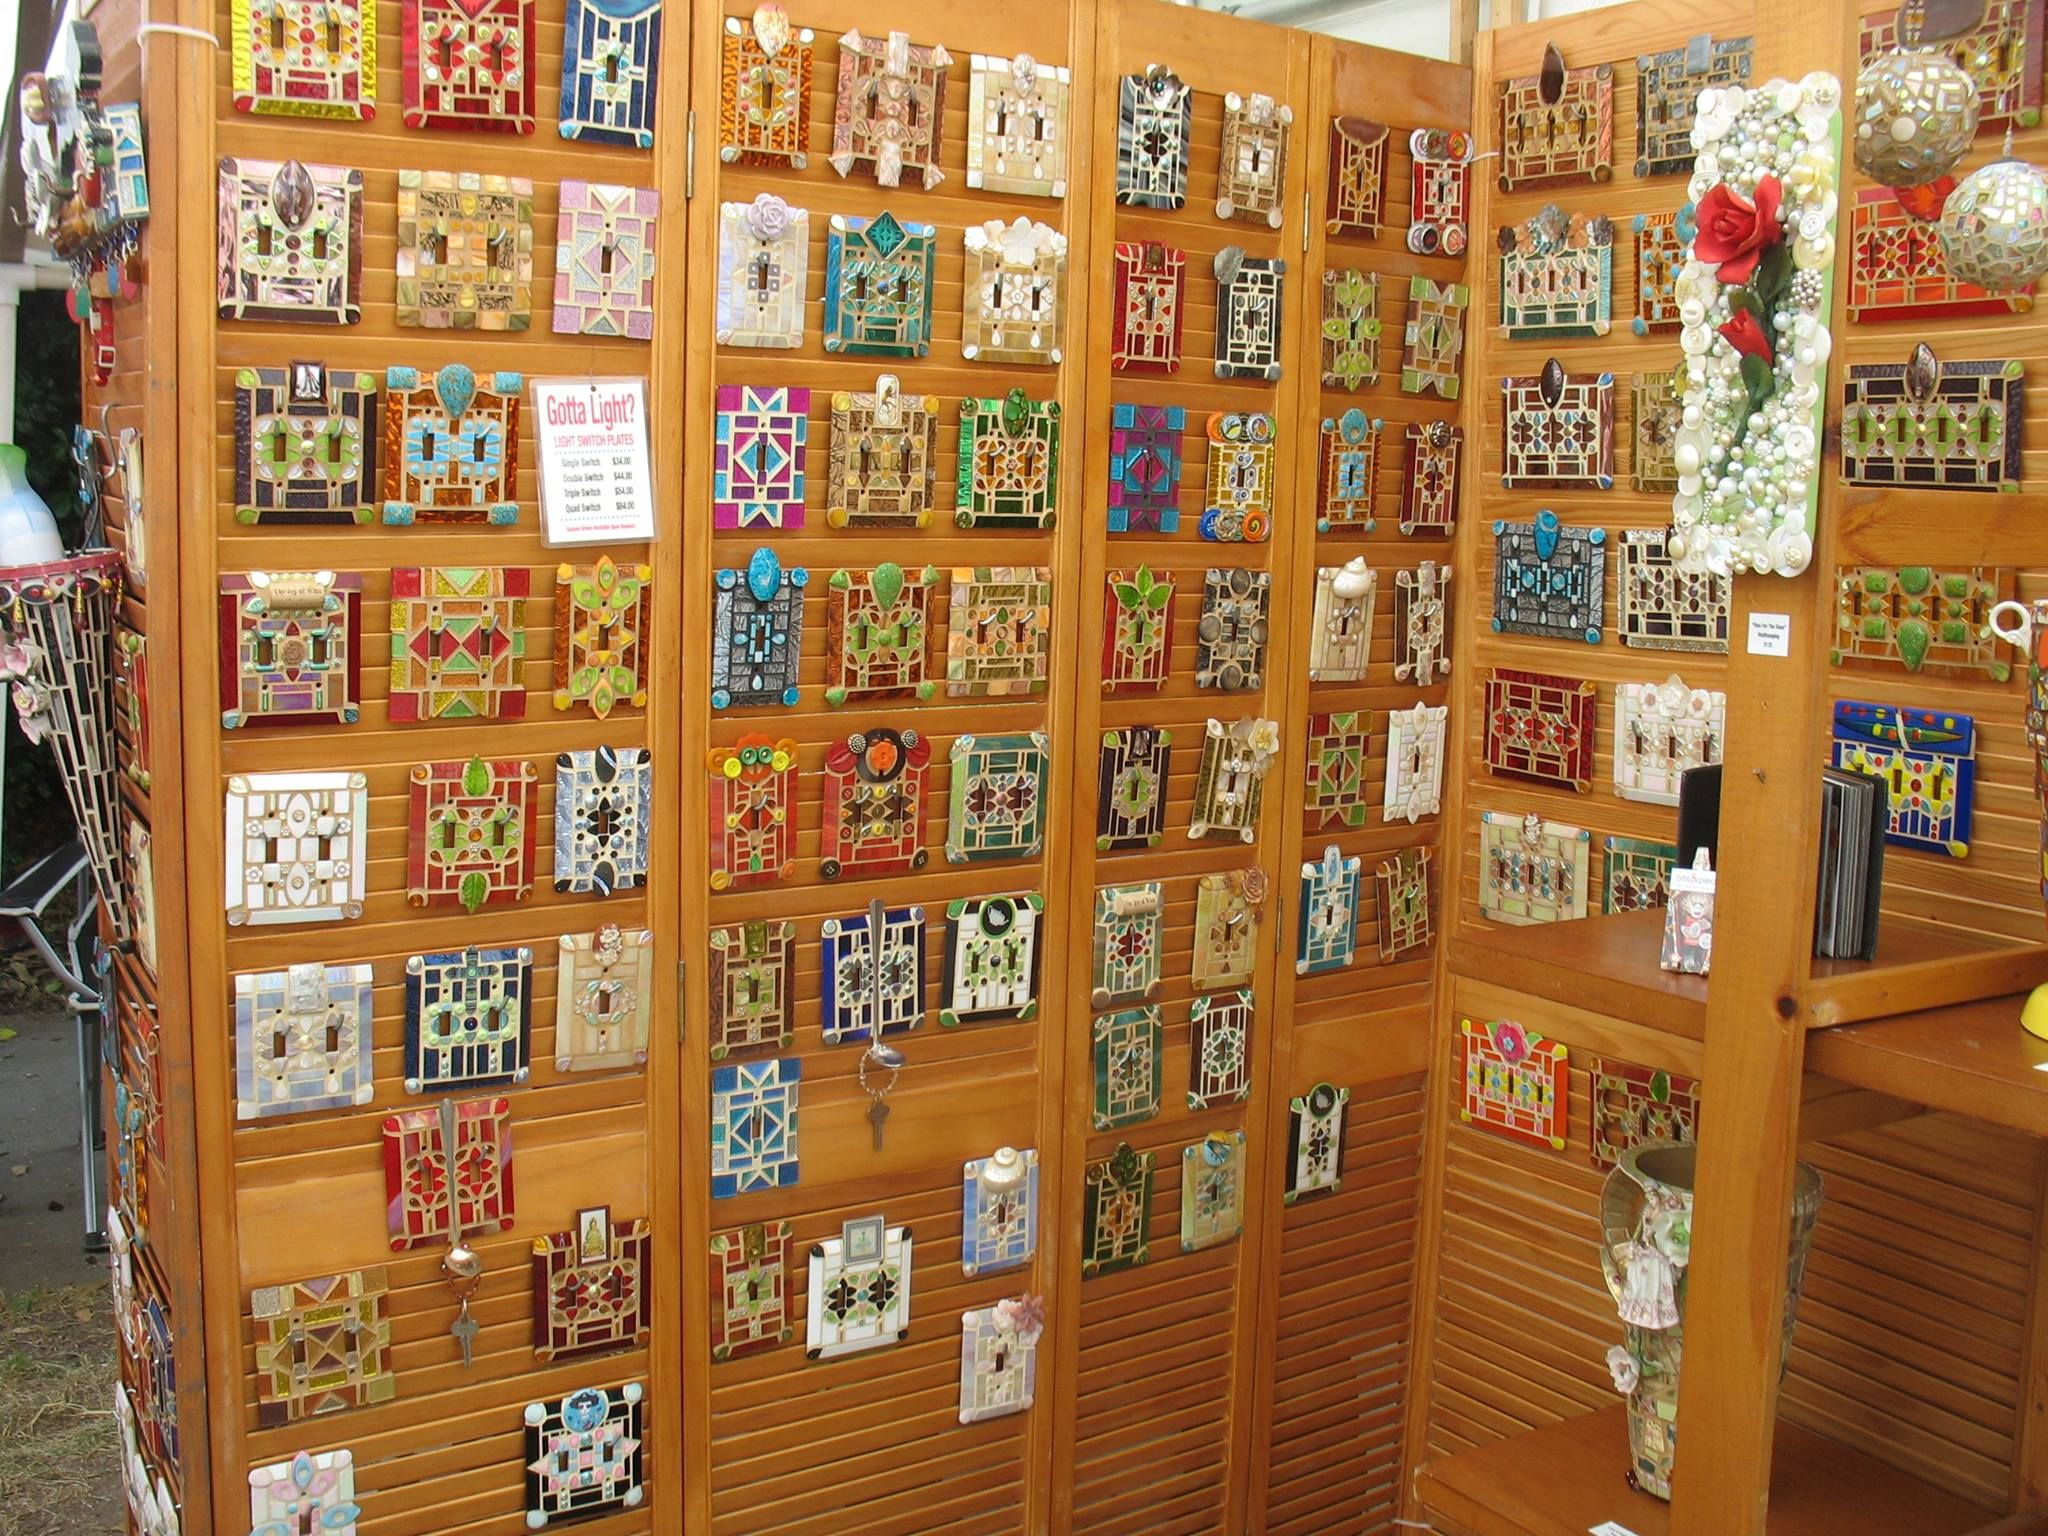 Arts and crafts switch plate covers - Find This Pin And More On Cedarhurst Craft Fair